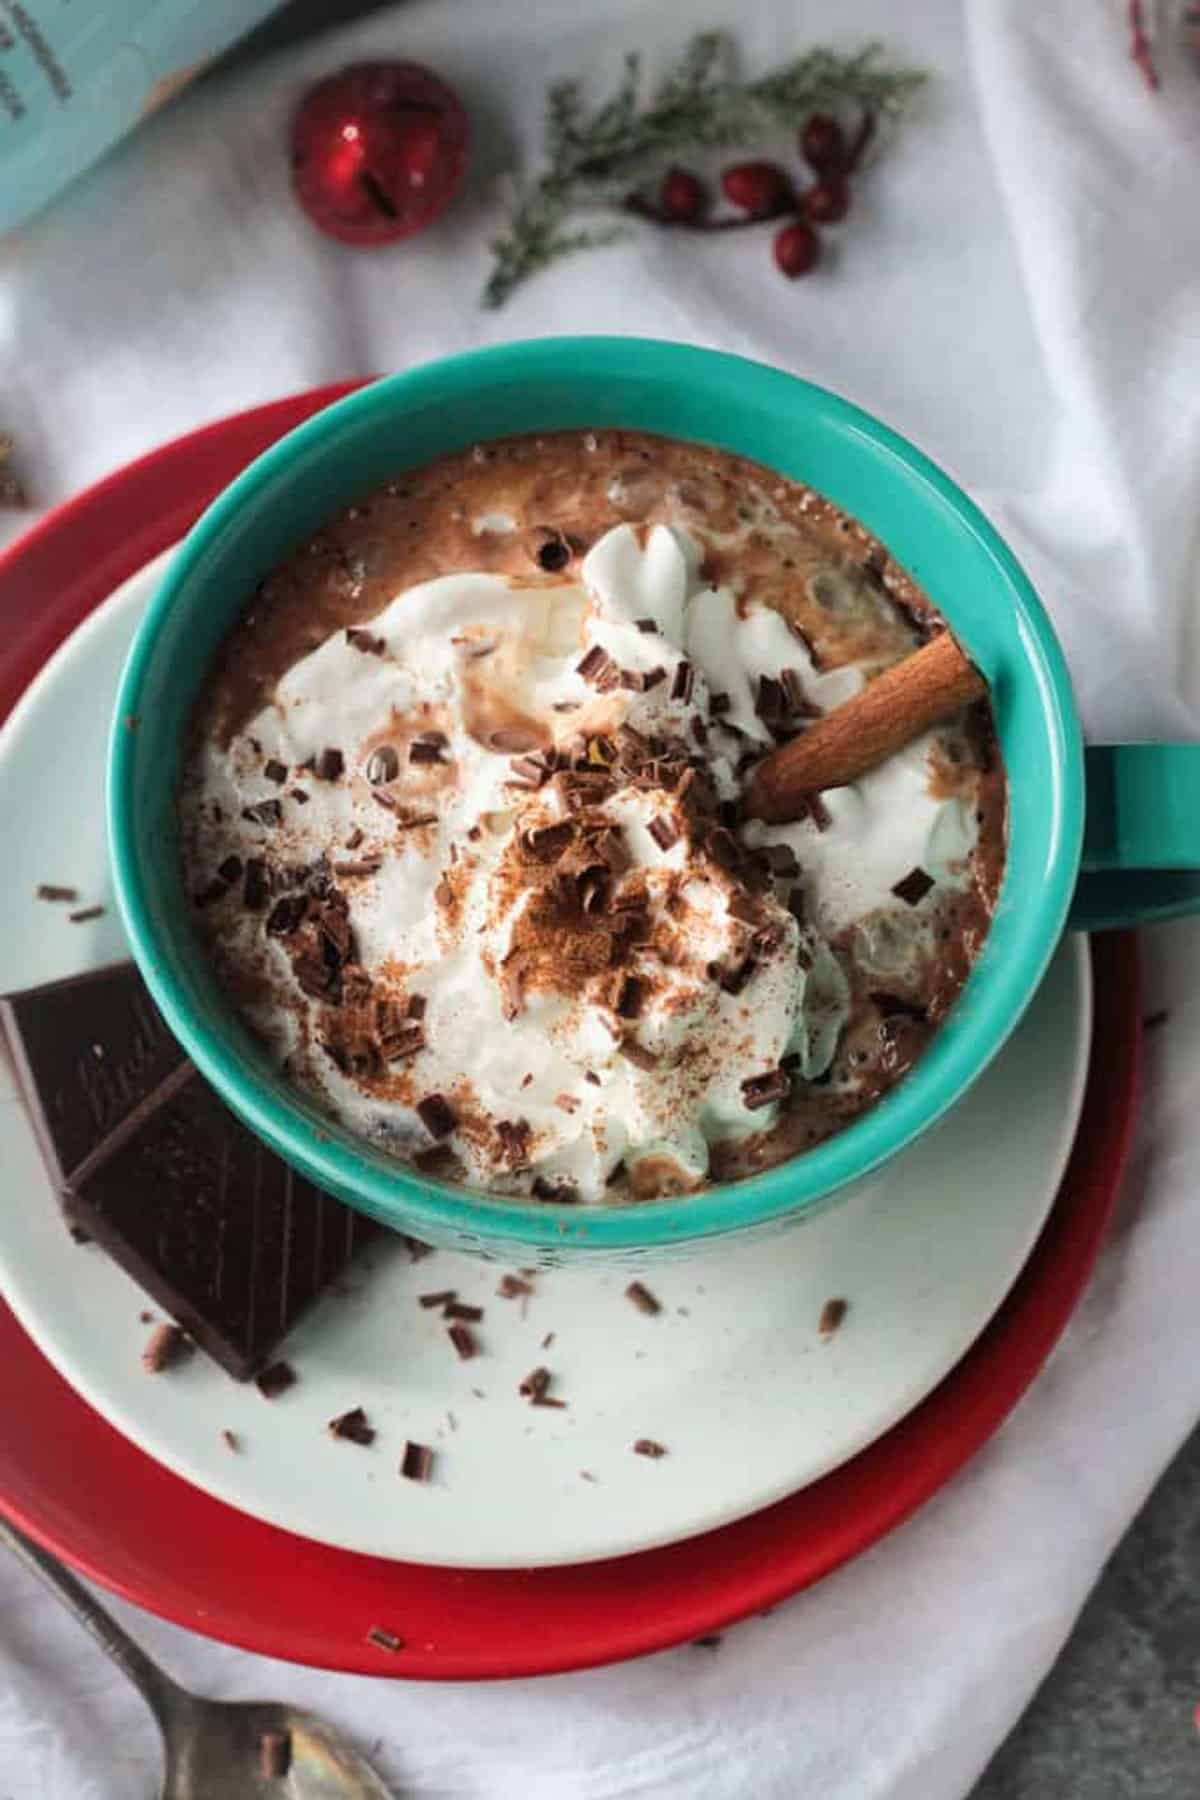 Hot cocoa topped with whipped cream, chocolate shavings, ground cinnamon and a cinnamon stick.